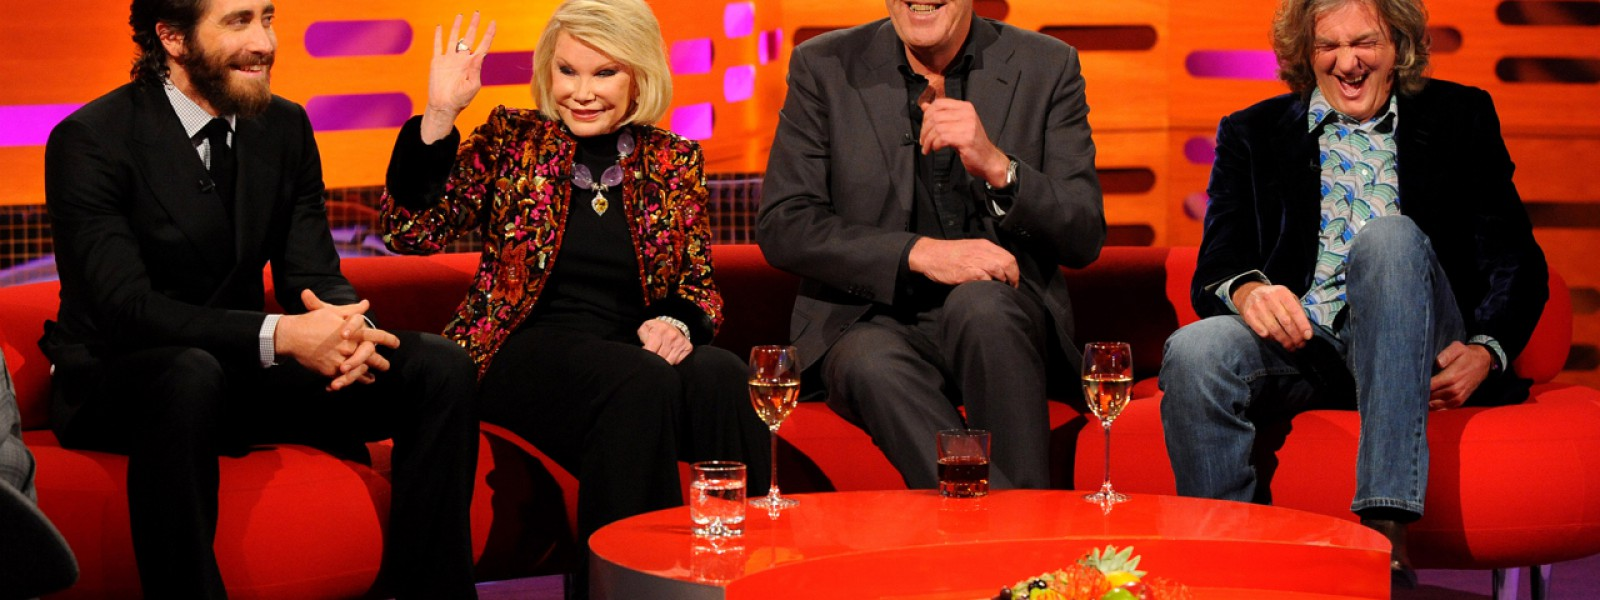 grahamnorton_photo_s12_e6_03_web